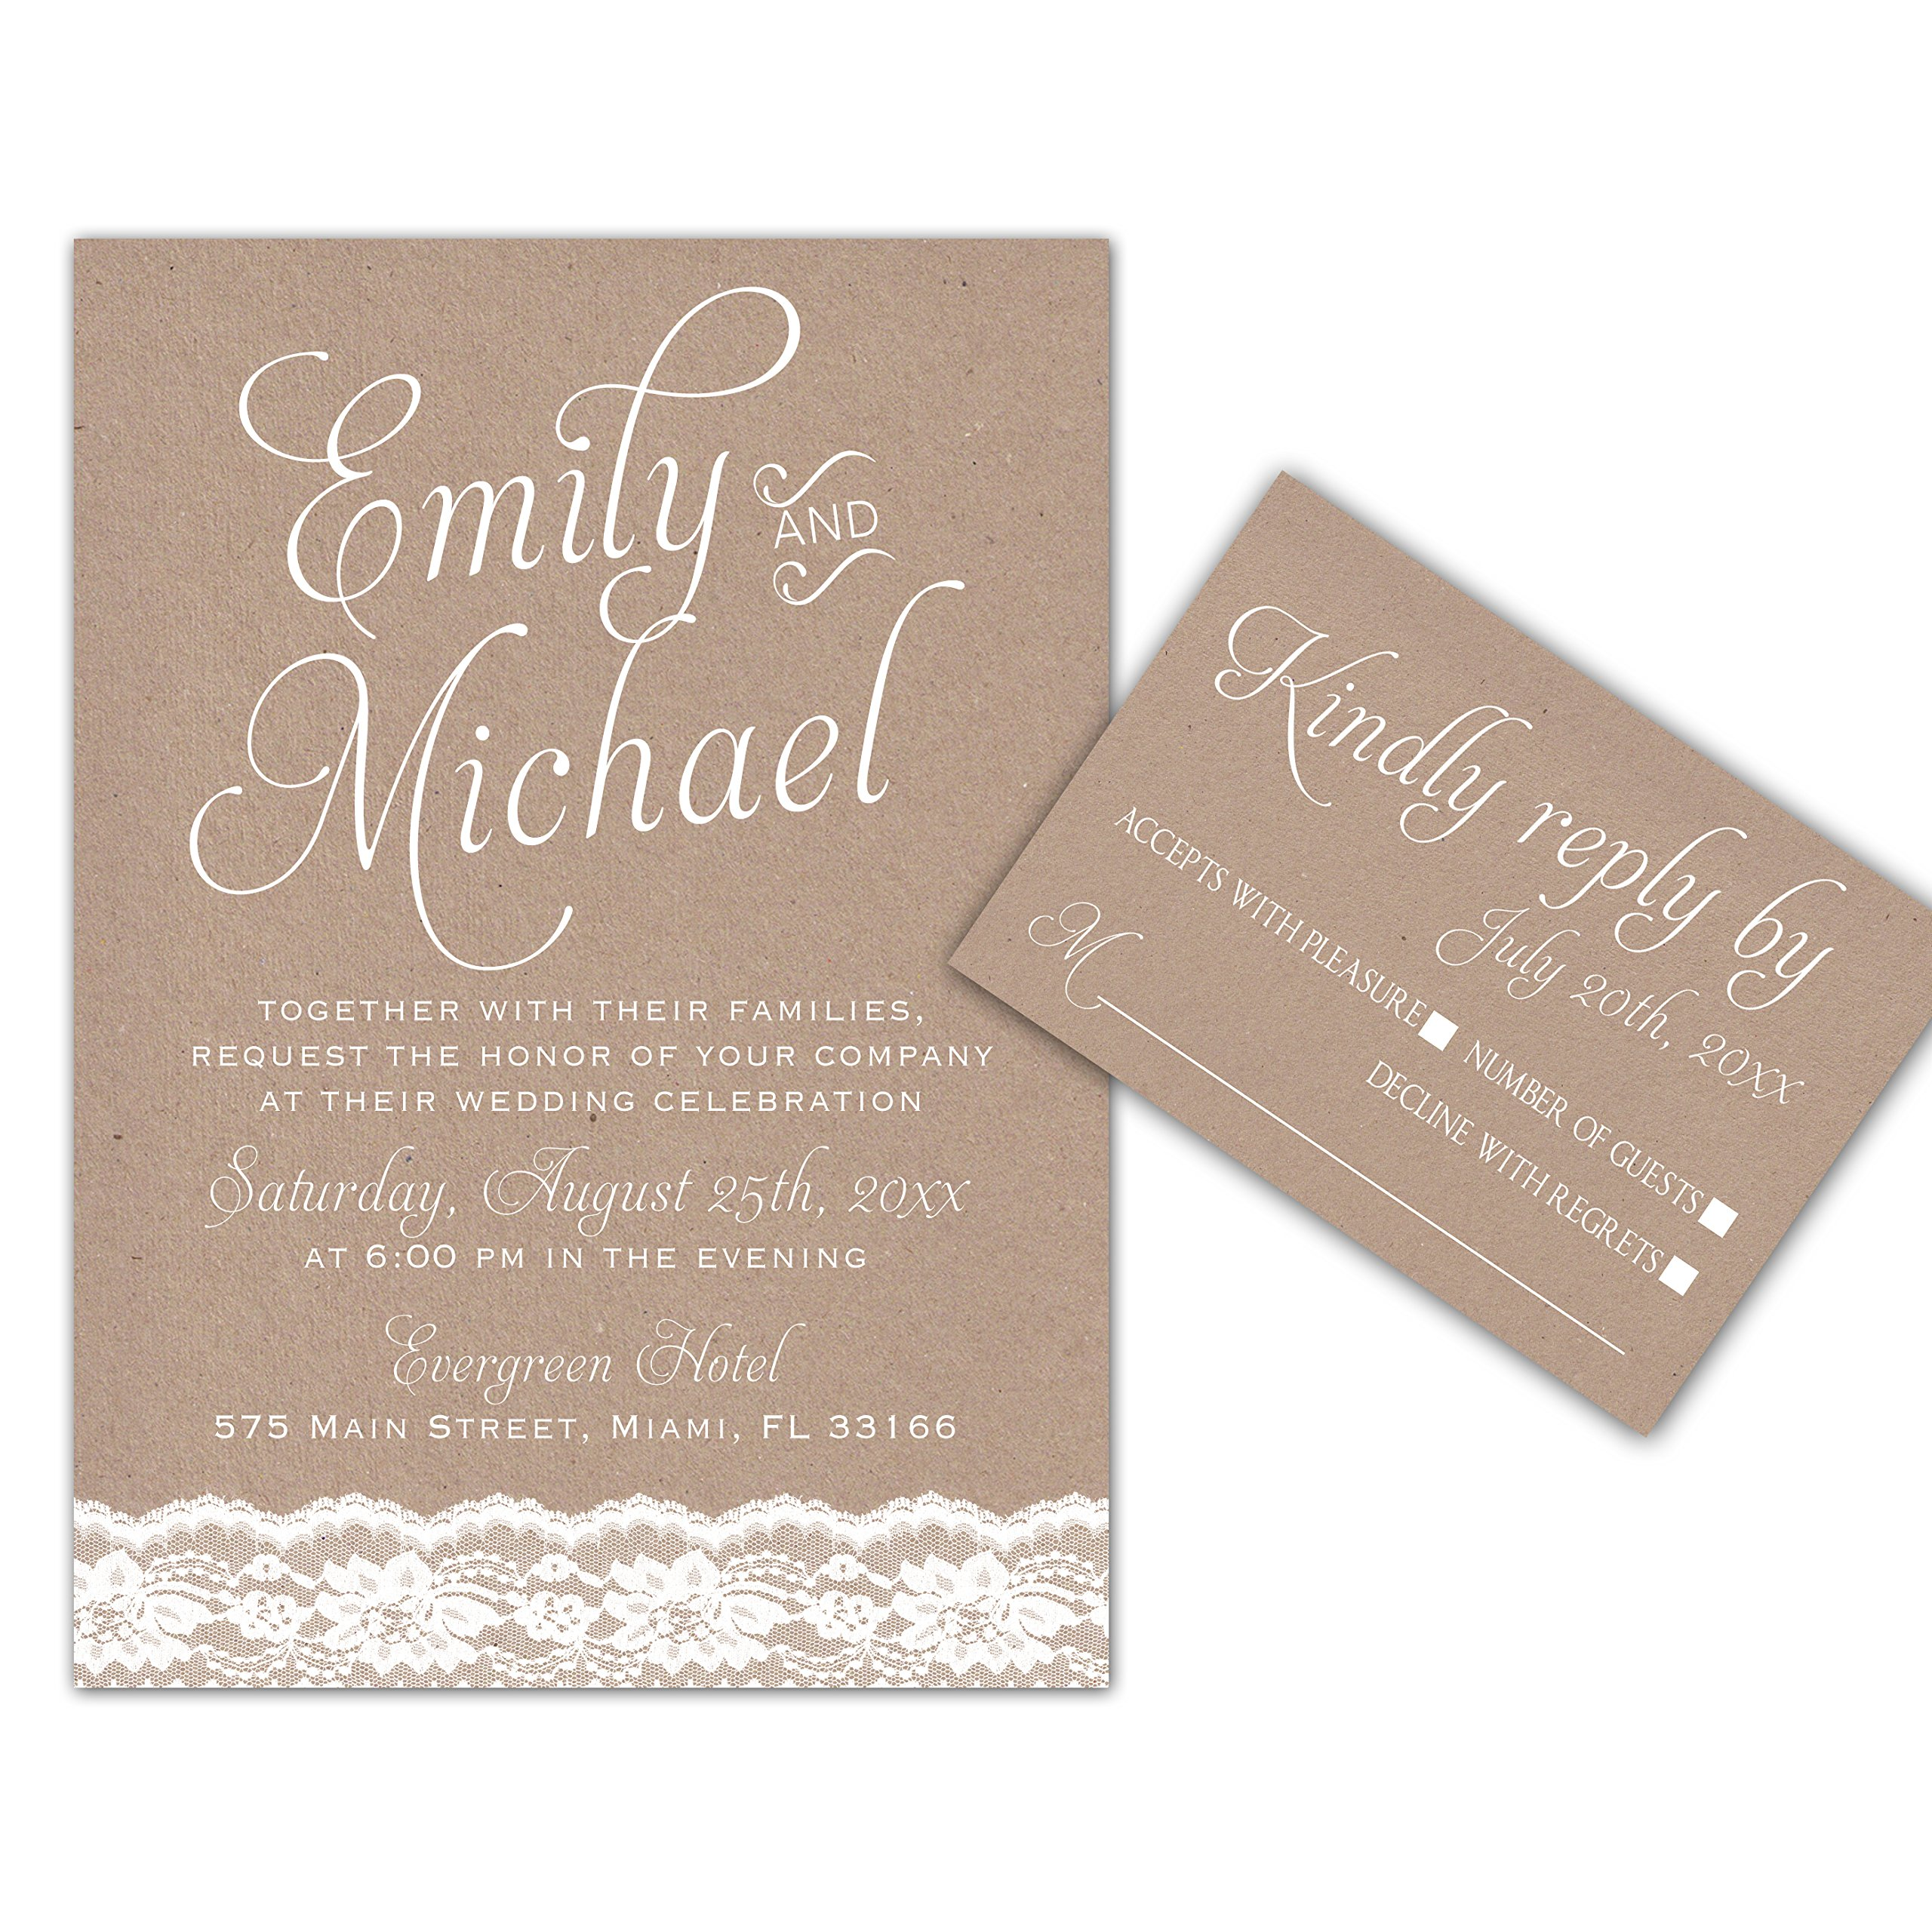 100 Wedding Invitations Lace Rustic Design + Envelopes + Response Cards Set by Pink The Cat